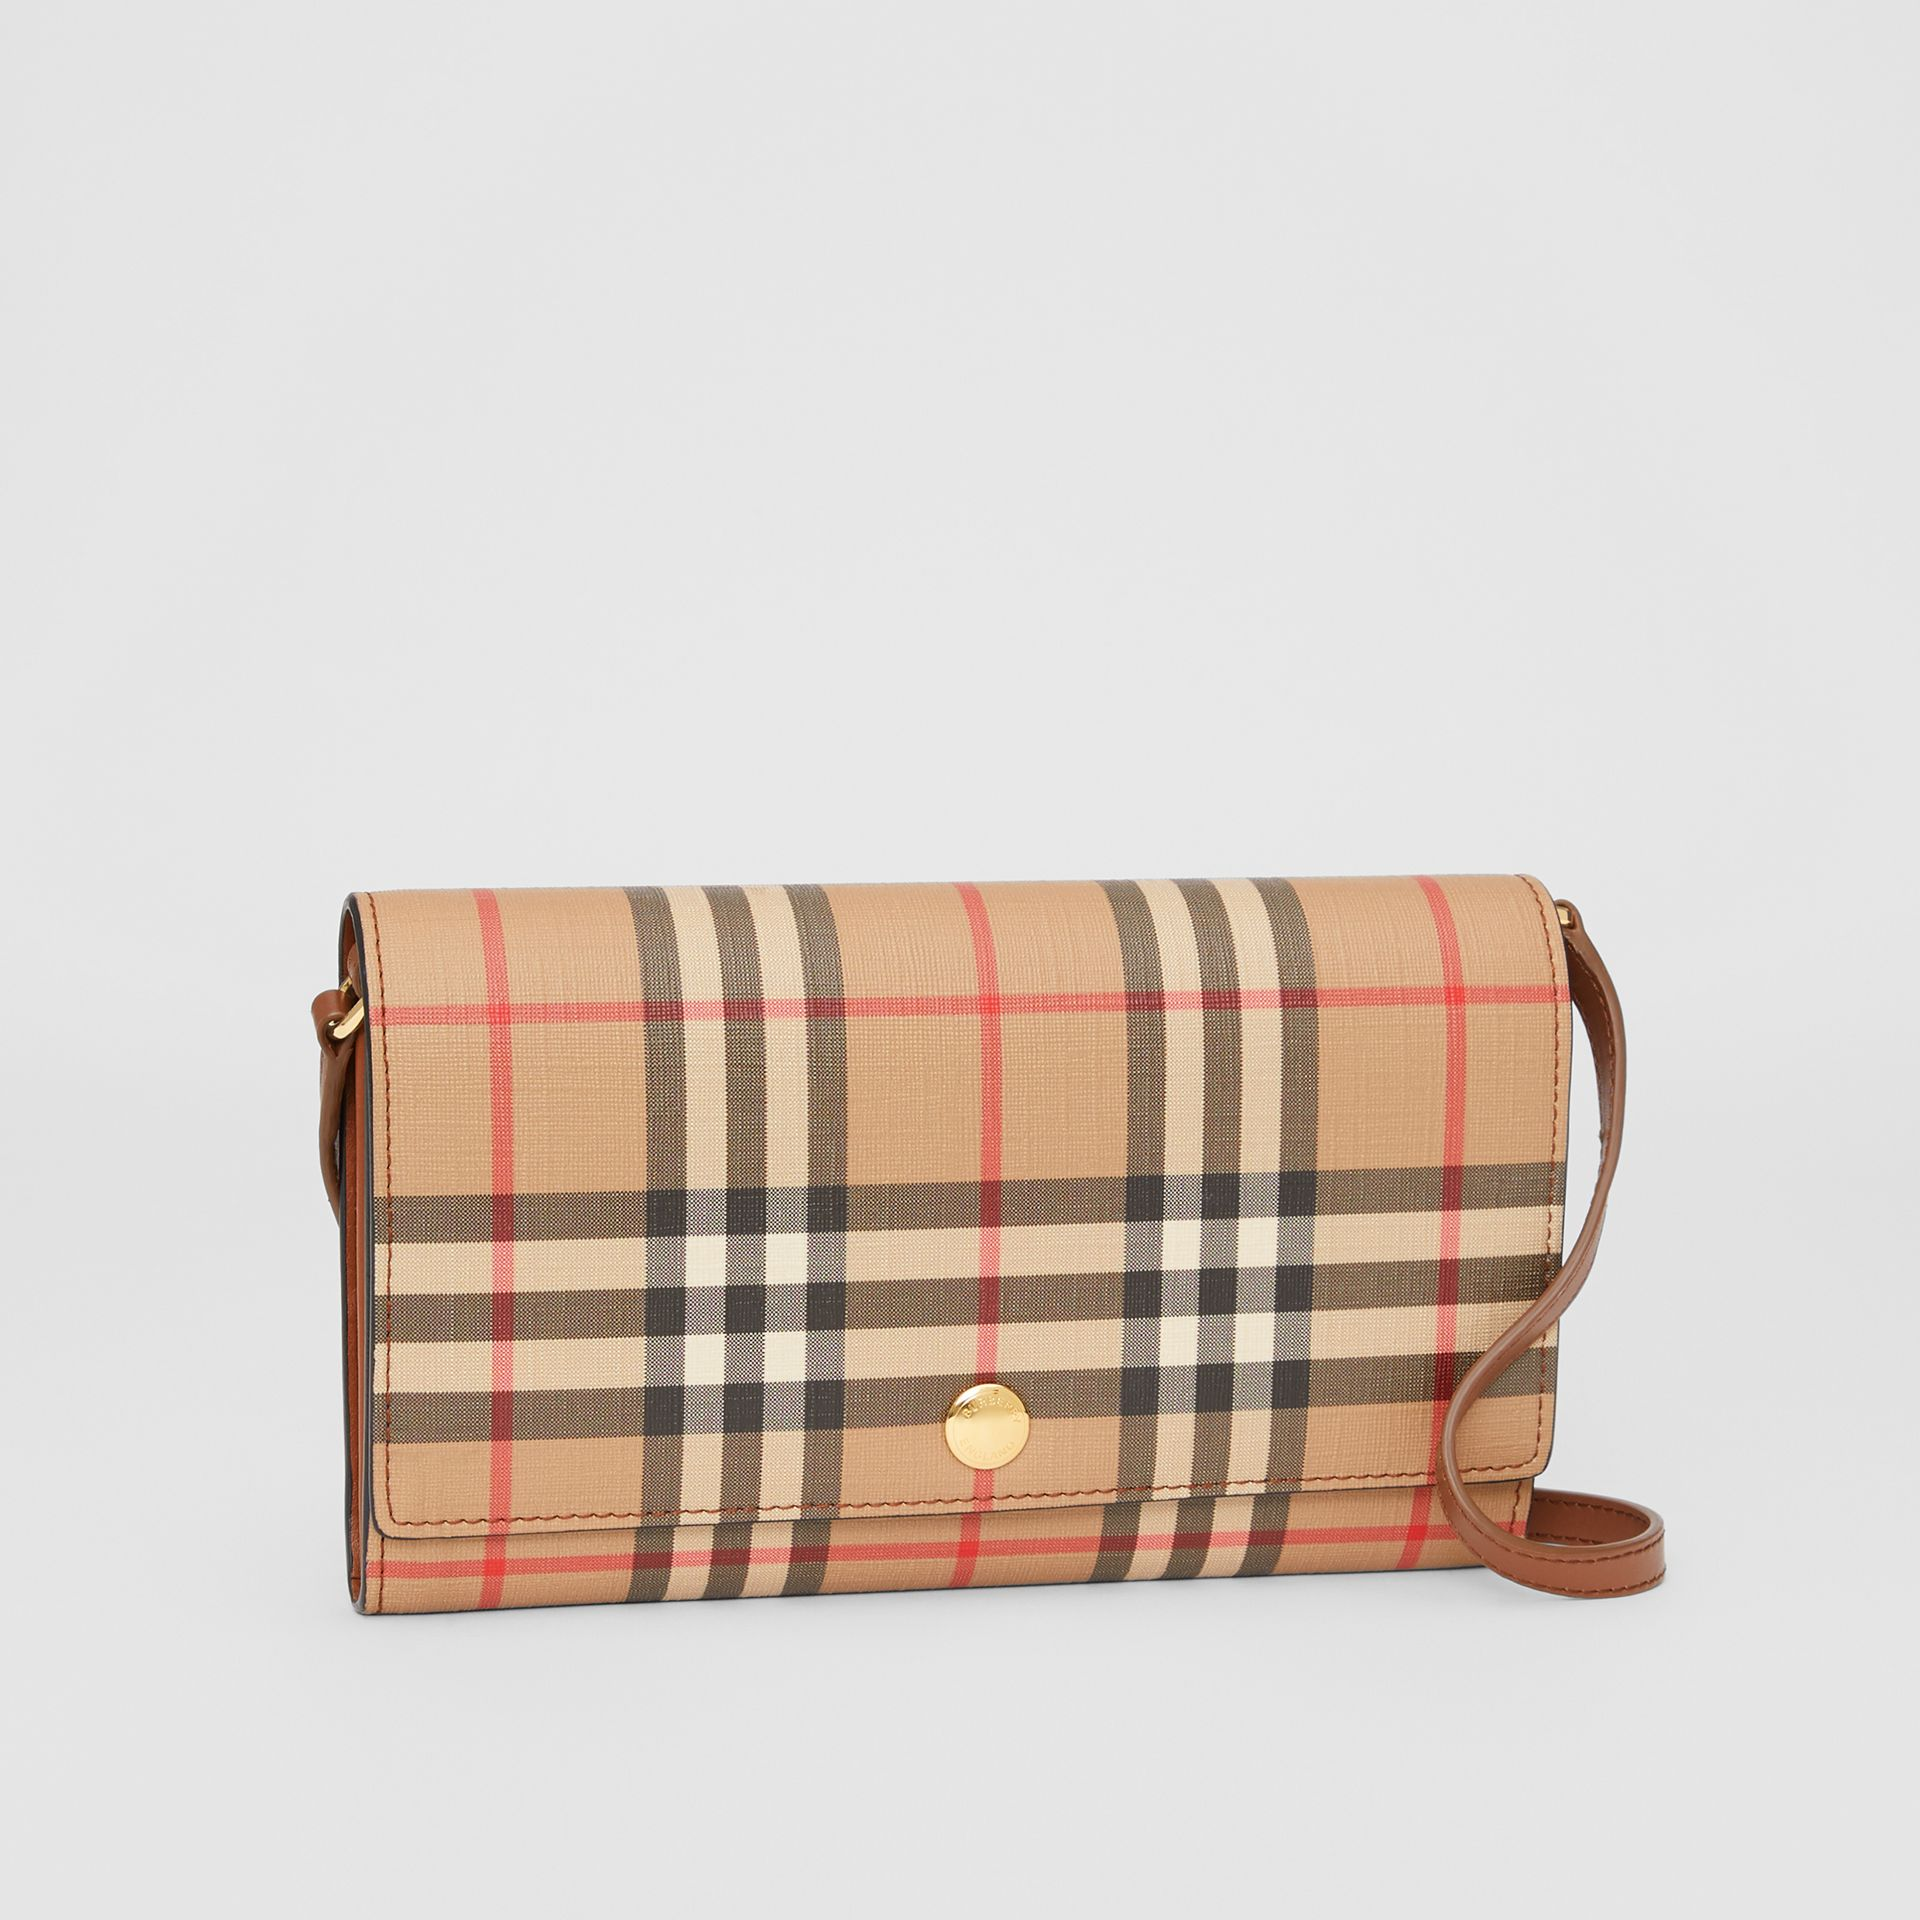 Portefeuille Vintage check avec sangle amovible (Brun Malt) - Femme | Burberry Canada - photo de la galerie 4